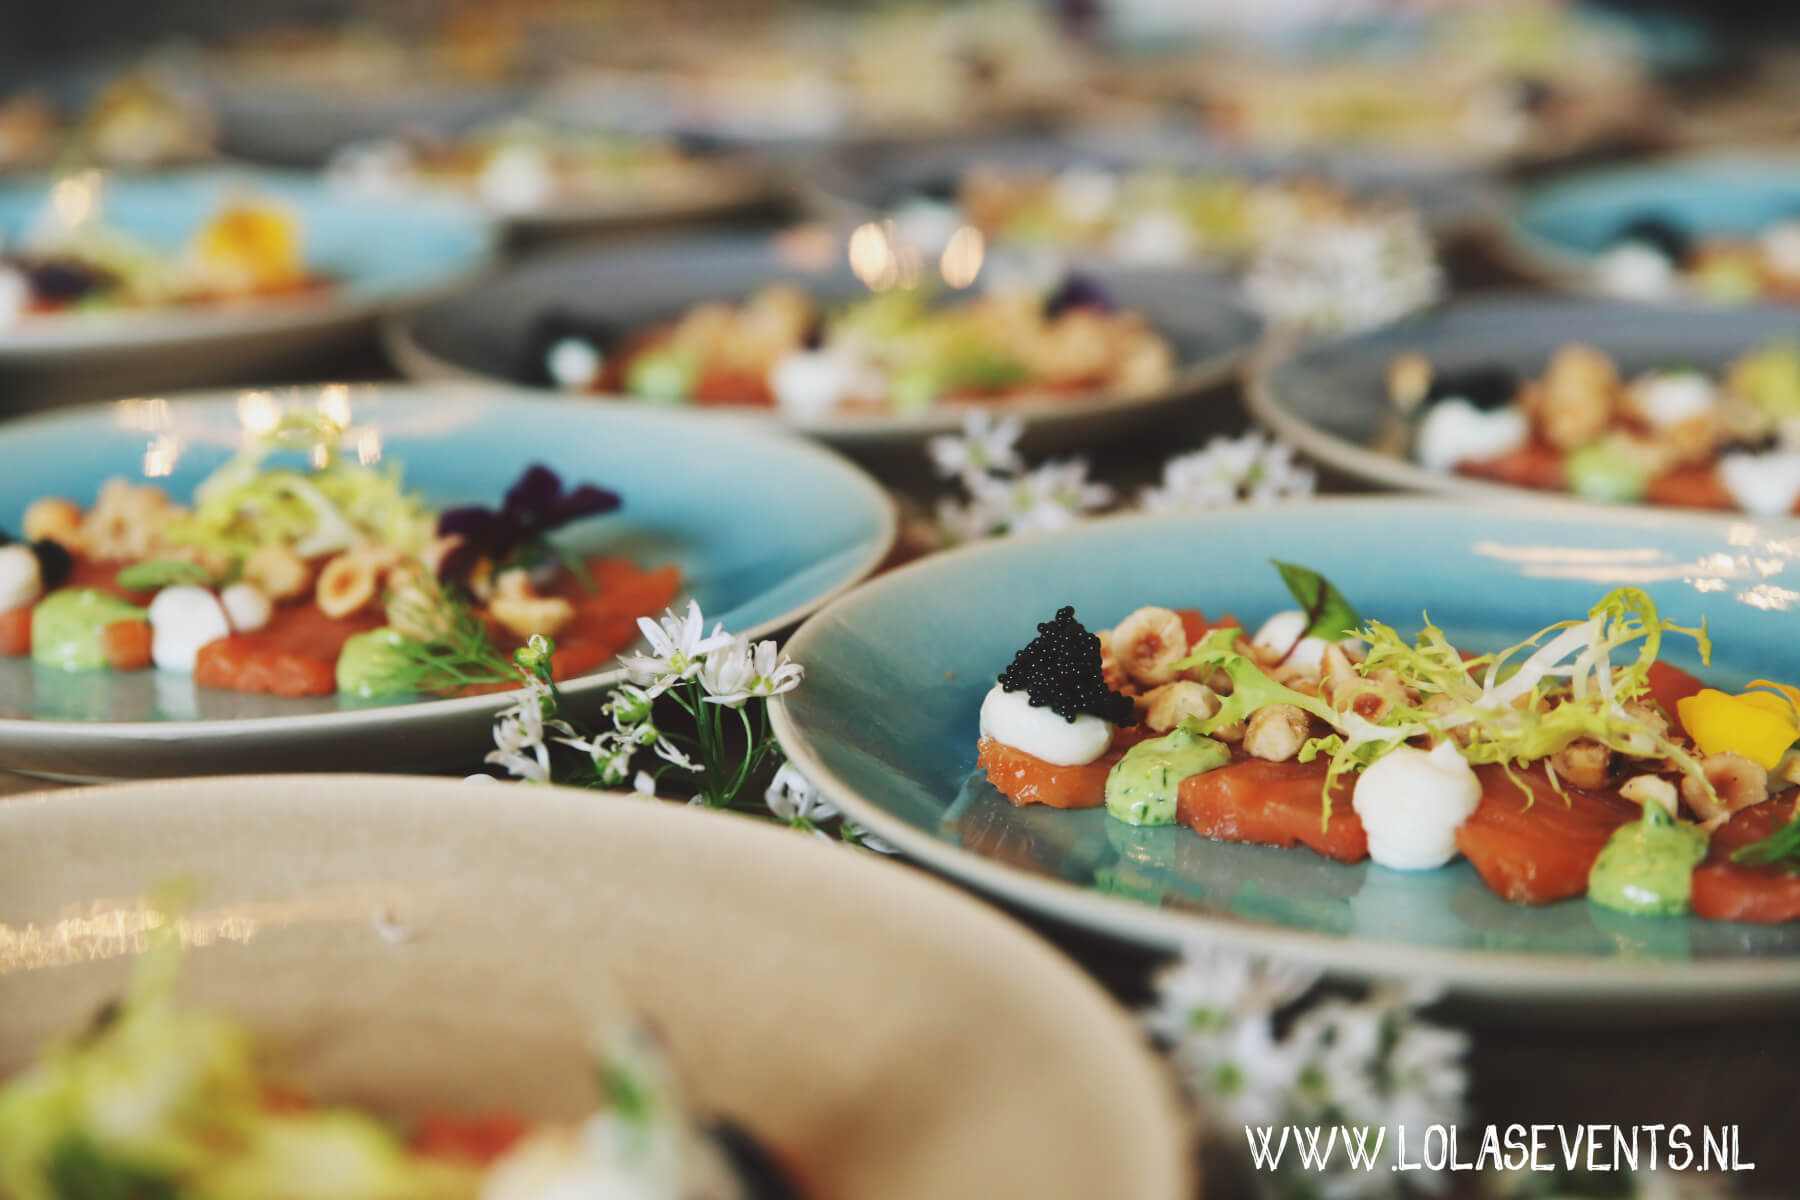 Lola's Catering